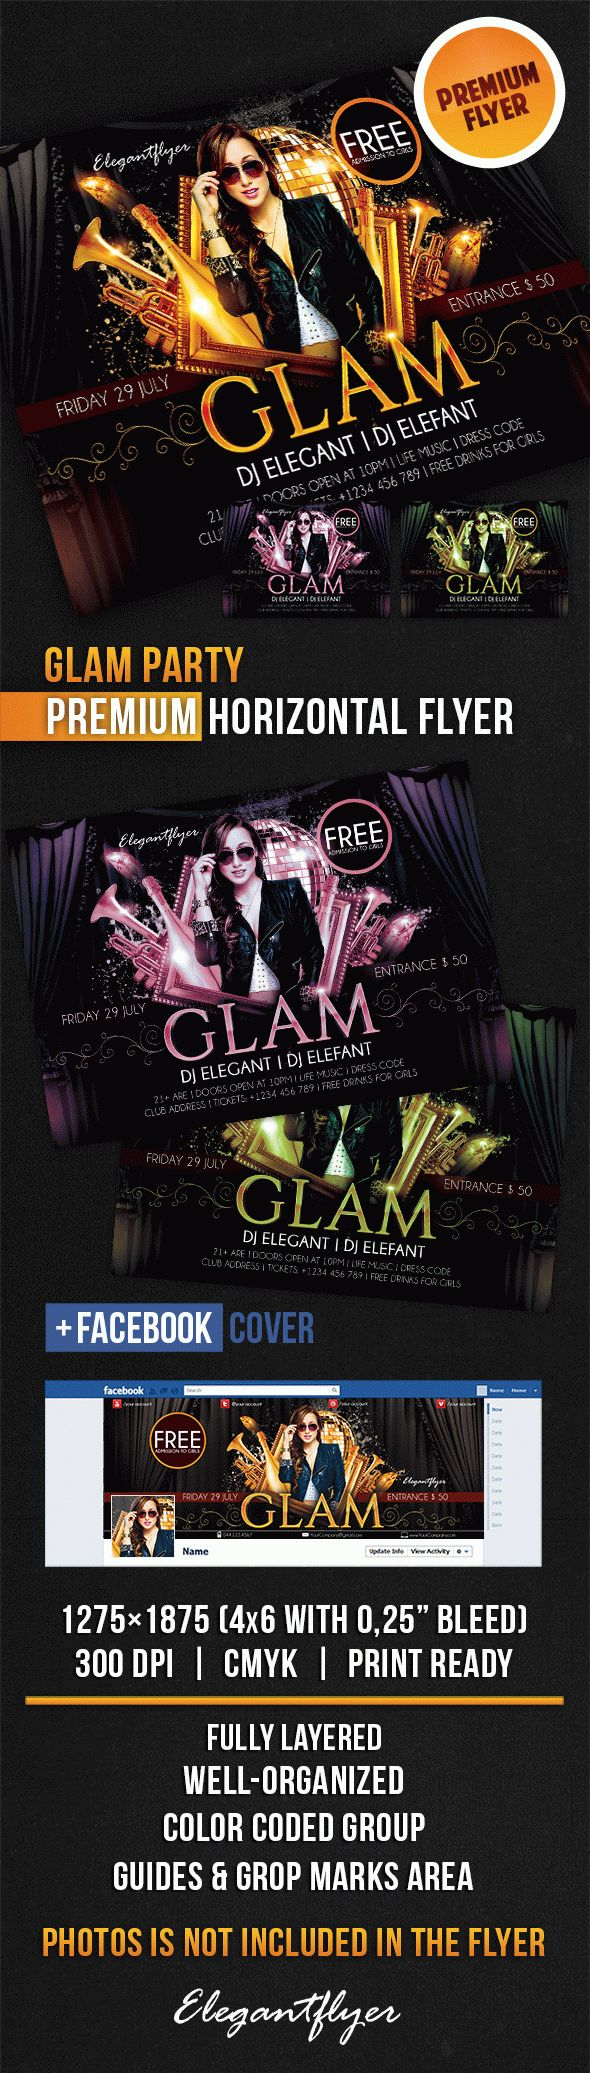 Glam Party – Horizontal Flyer PSD Template